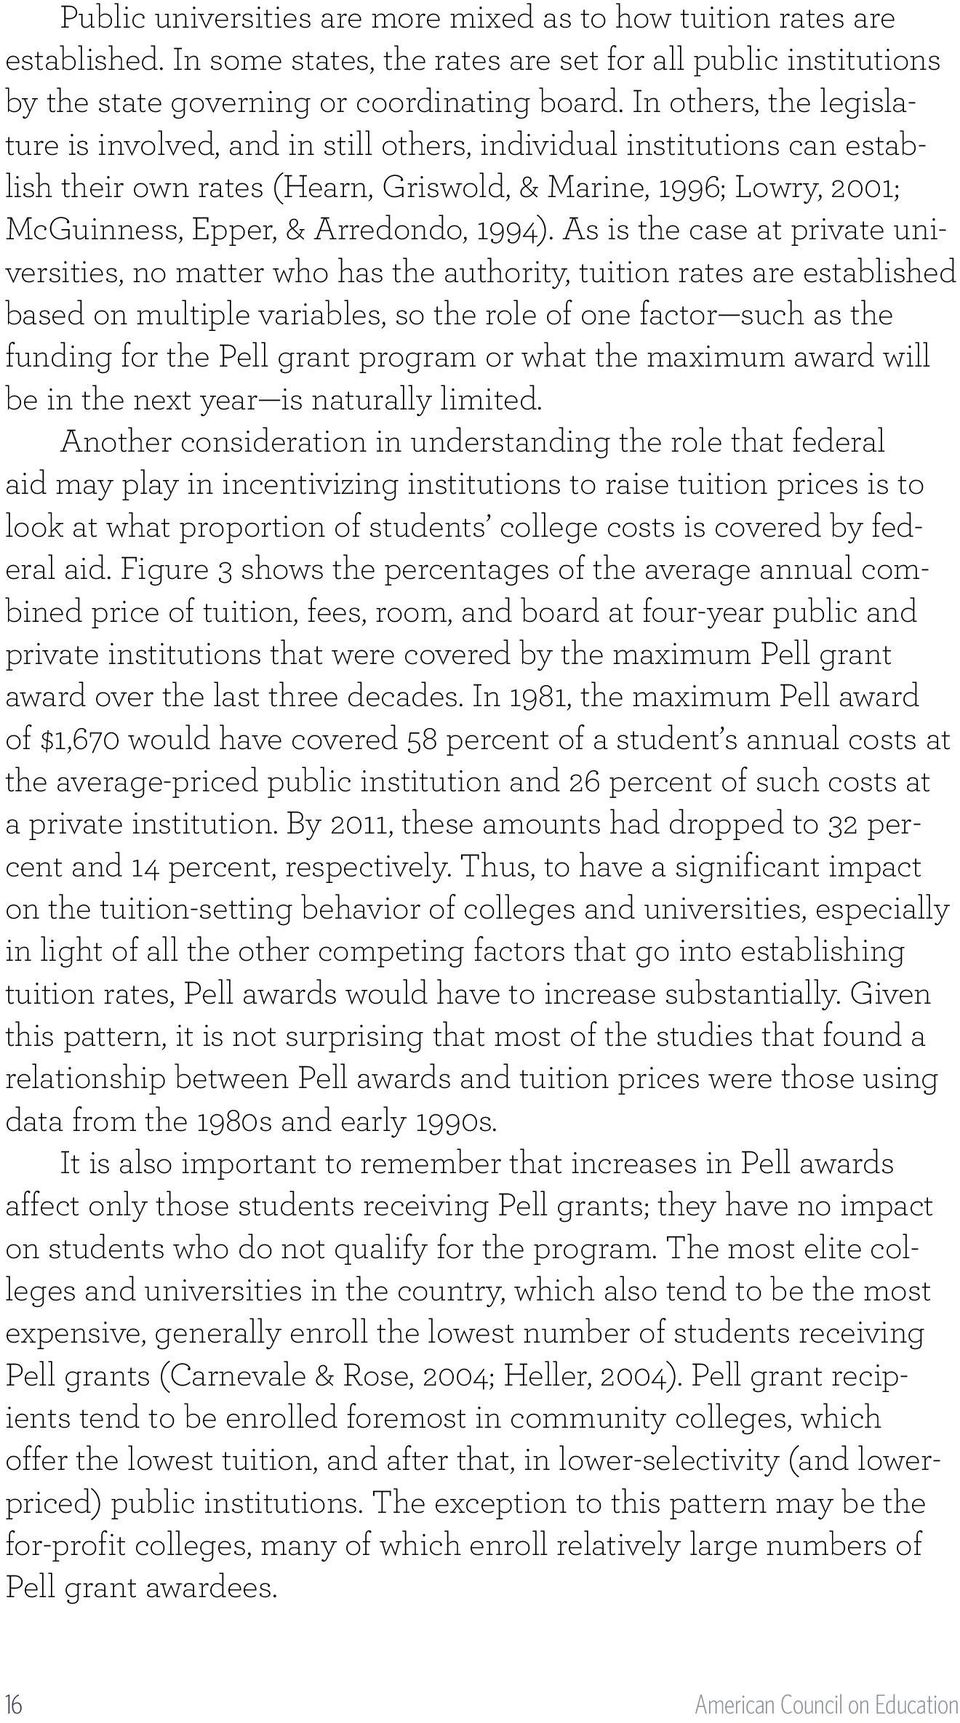 As is the case at private universities, no matter who has the authority, tuition rates are established based on multiple variables, so the role of one factor such as the funding for the Pell grant